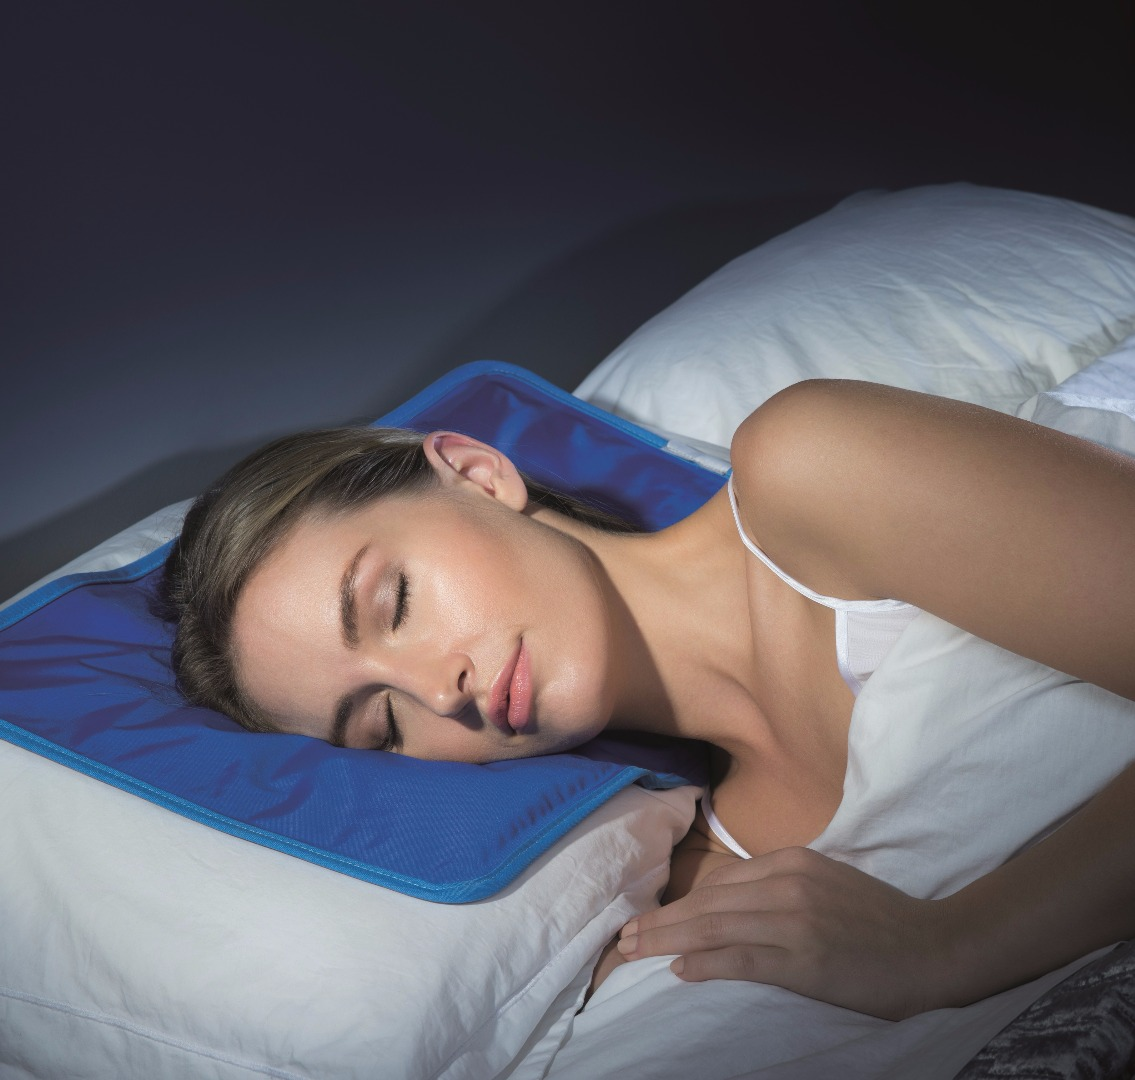 pareri Chillmax Pillow forum, pret, probleme